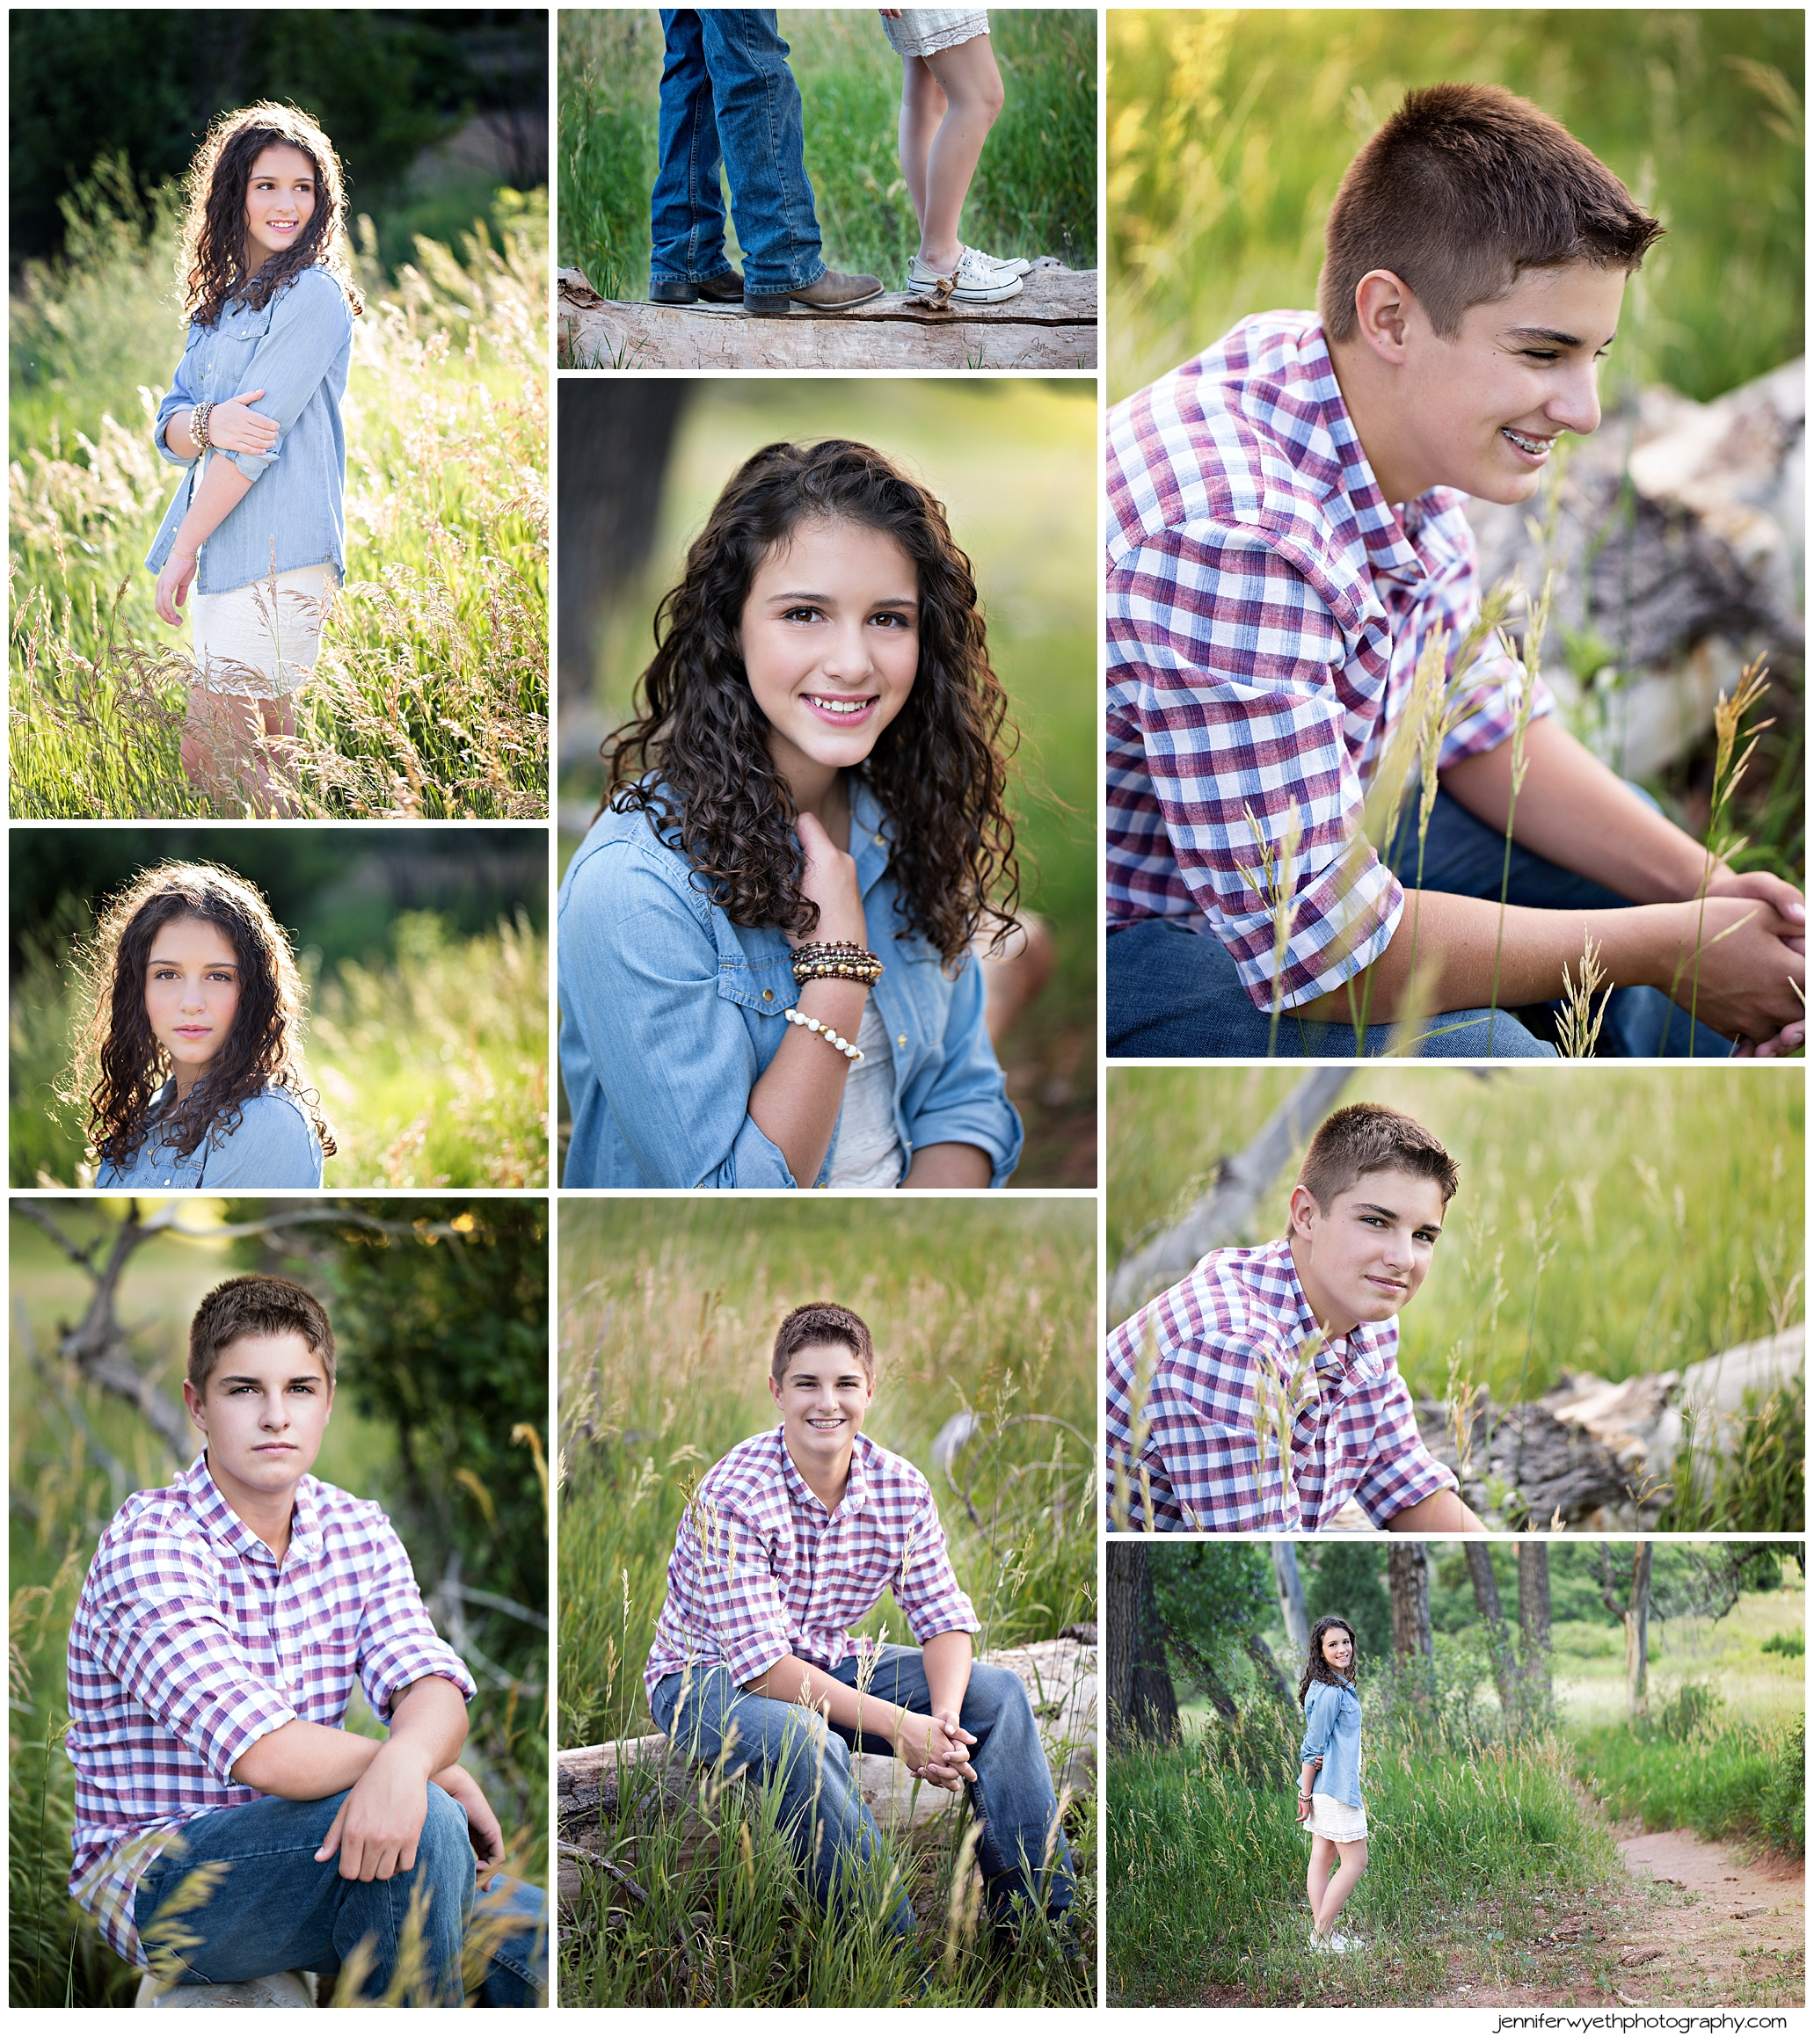 Jennifer-Wyeth-photography-senior-pictures-colorado-springs-photographer_0162.jpg